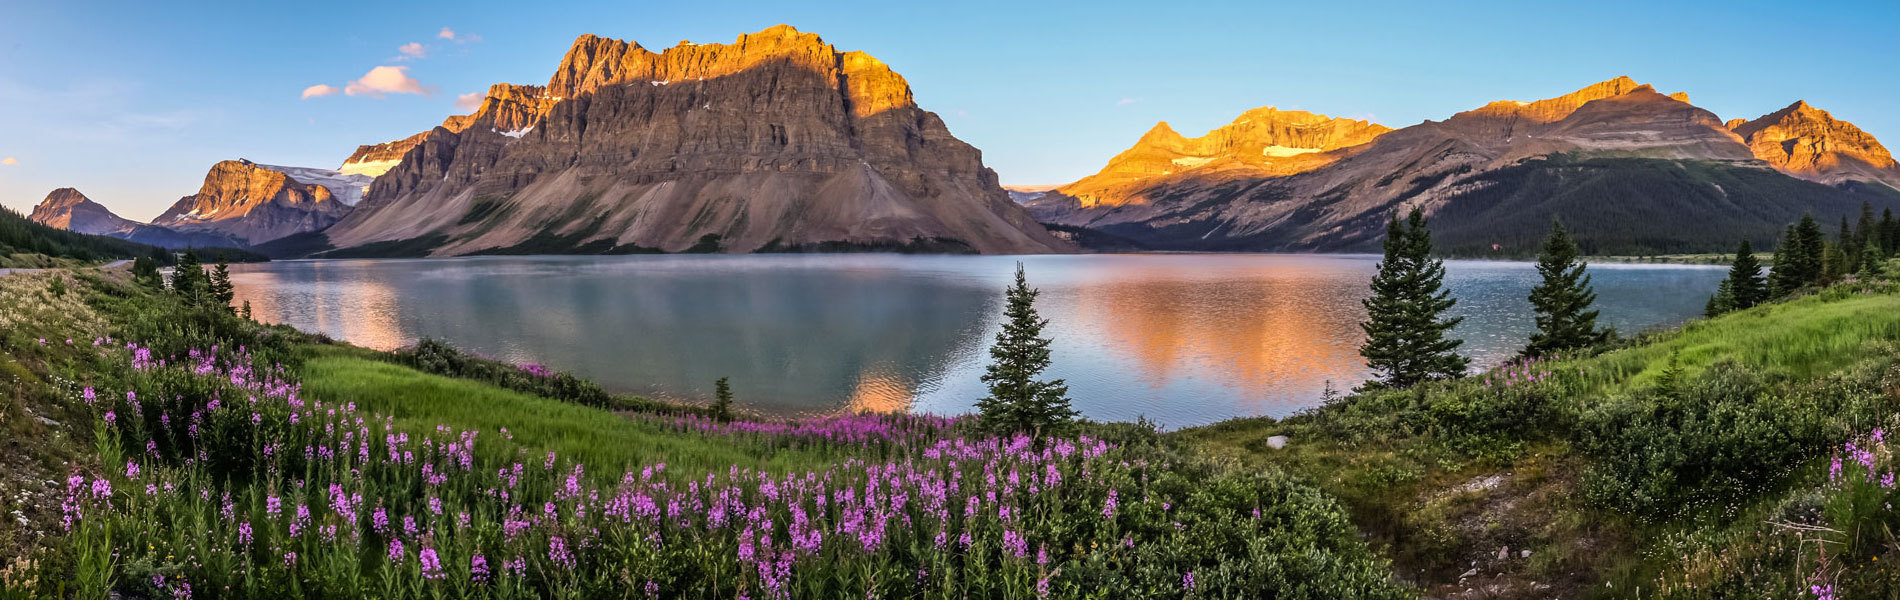 8_of-the_Most_Beautiful_National_Parks_in_North_America_1900x600.jpg